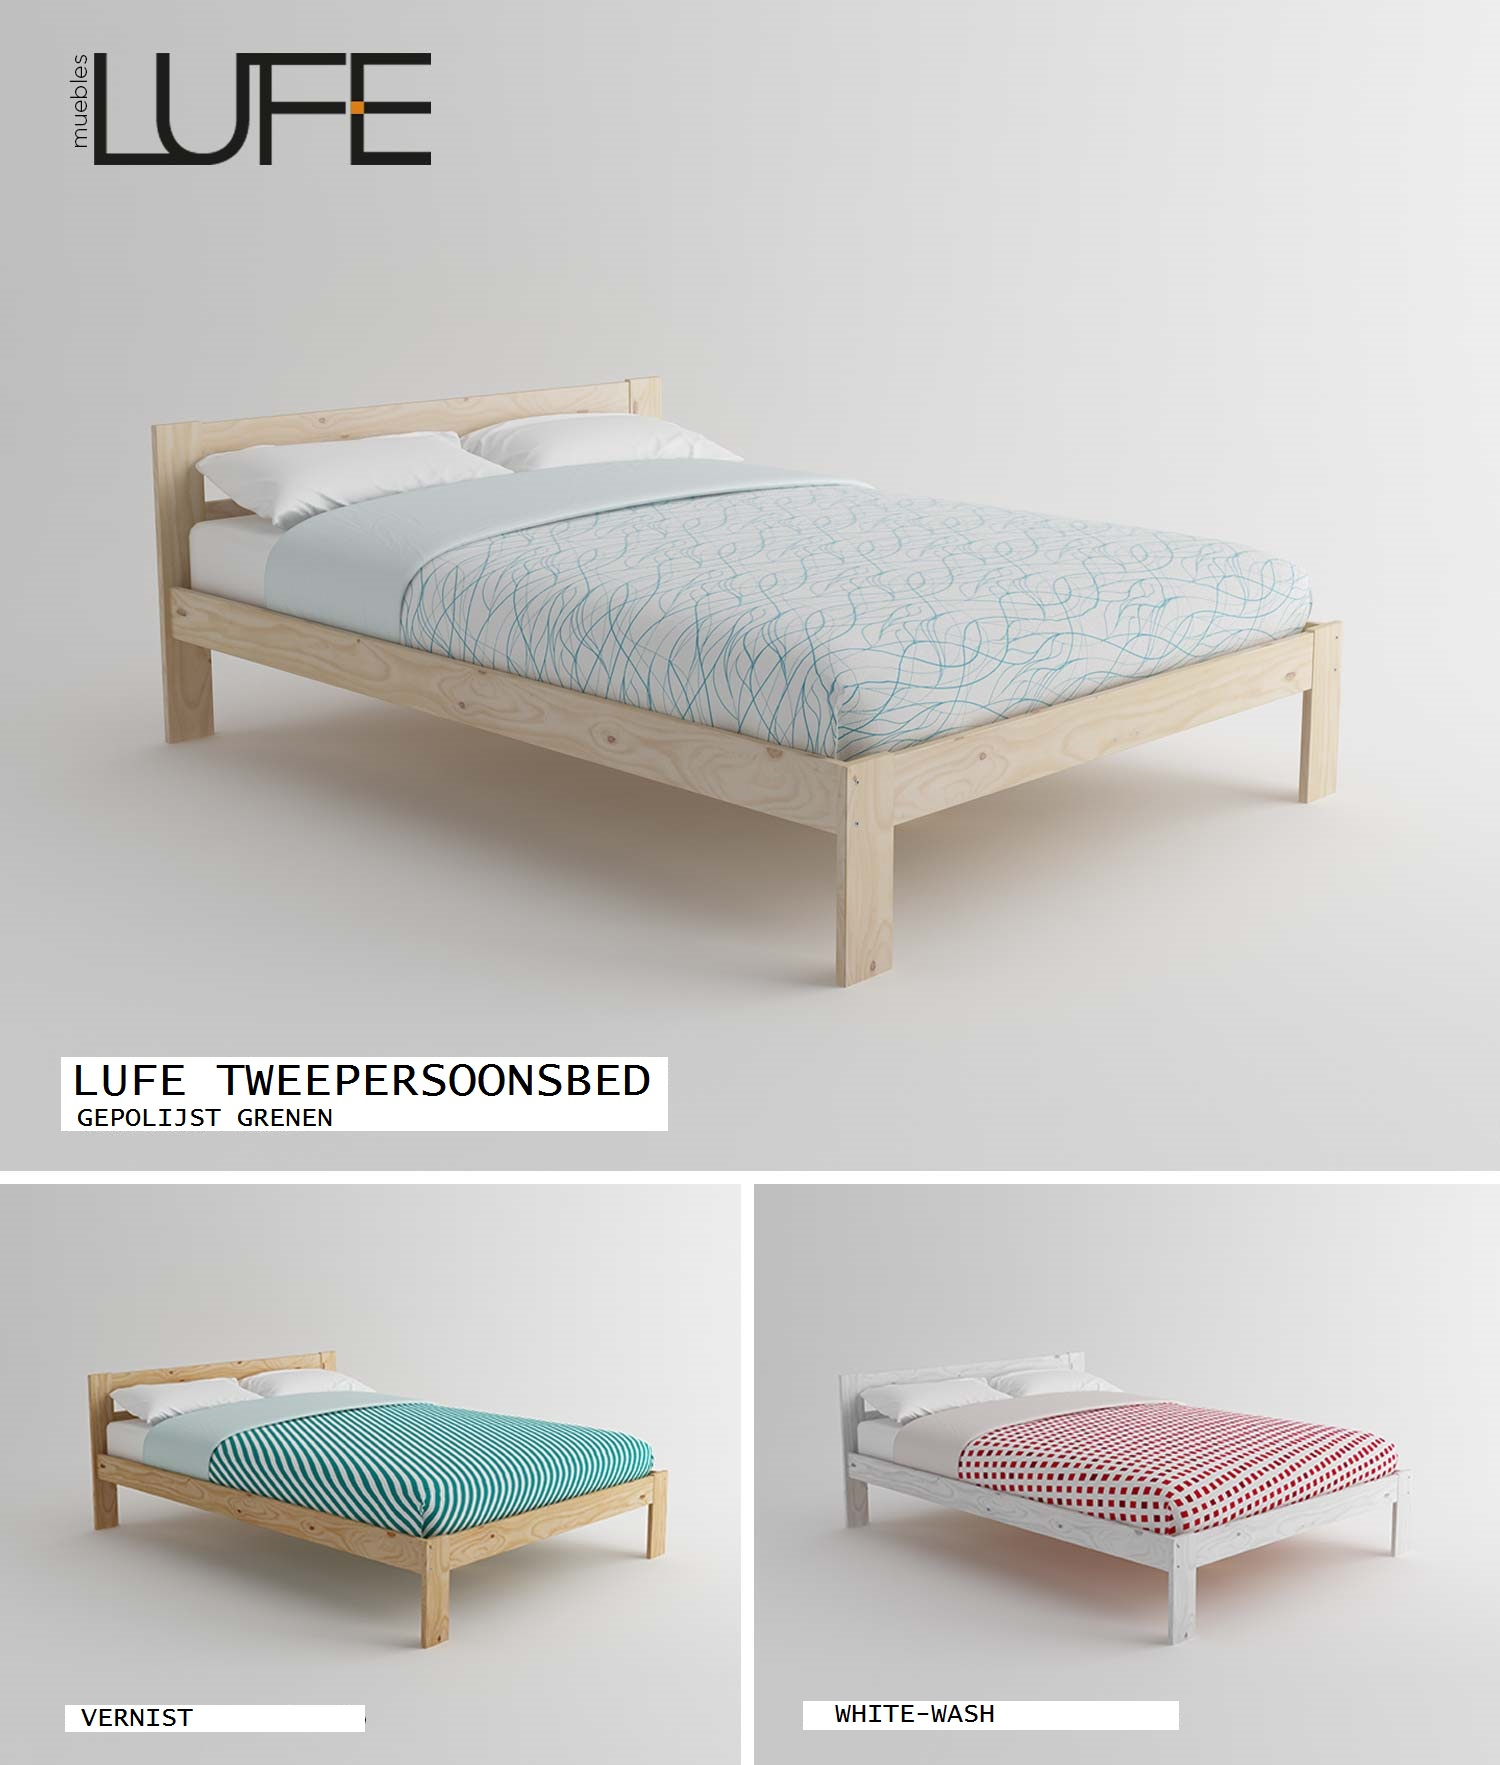 I Am Lufe Tweepersoonsbedframe Lufe Meubles Lufe Blog # Muebles Acabado Wash